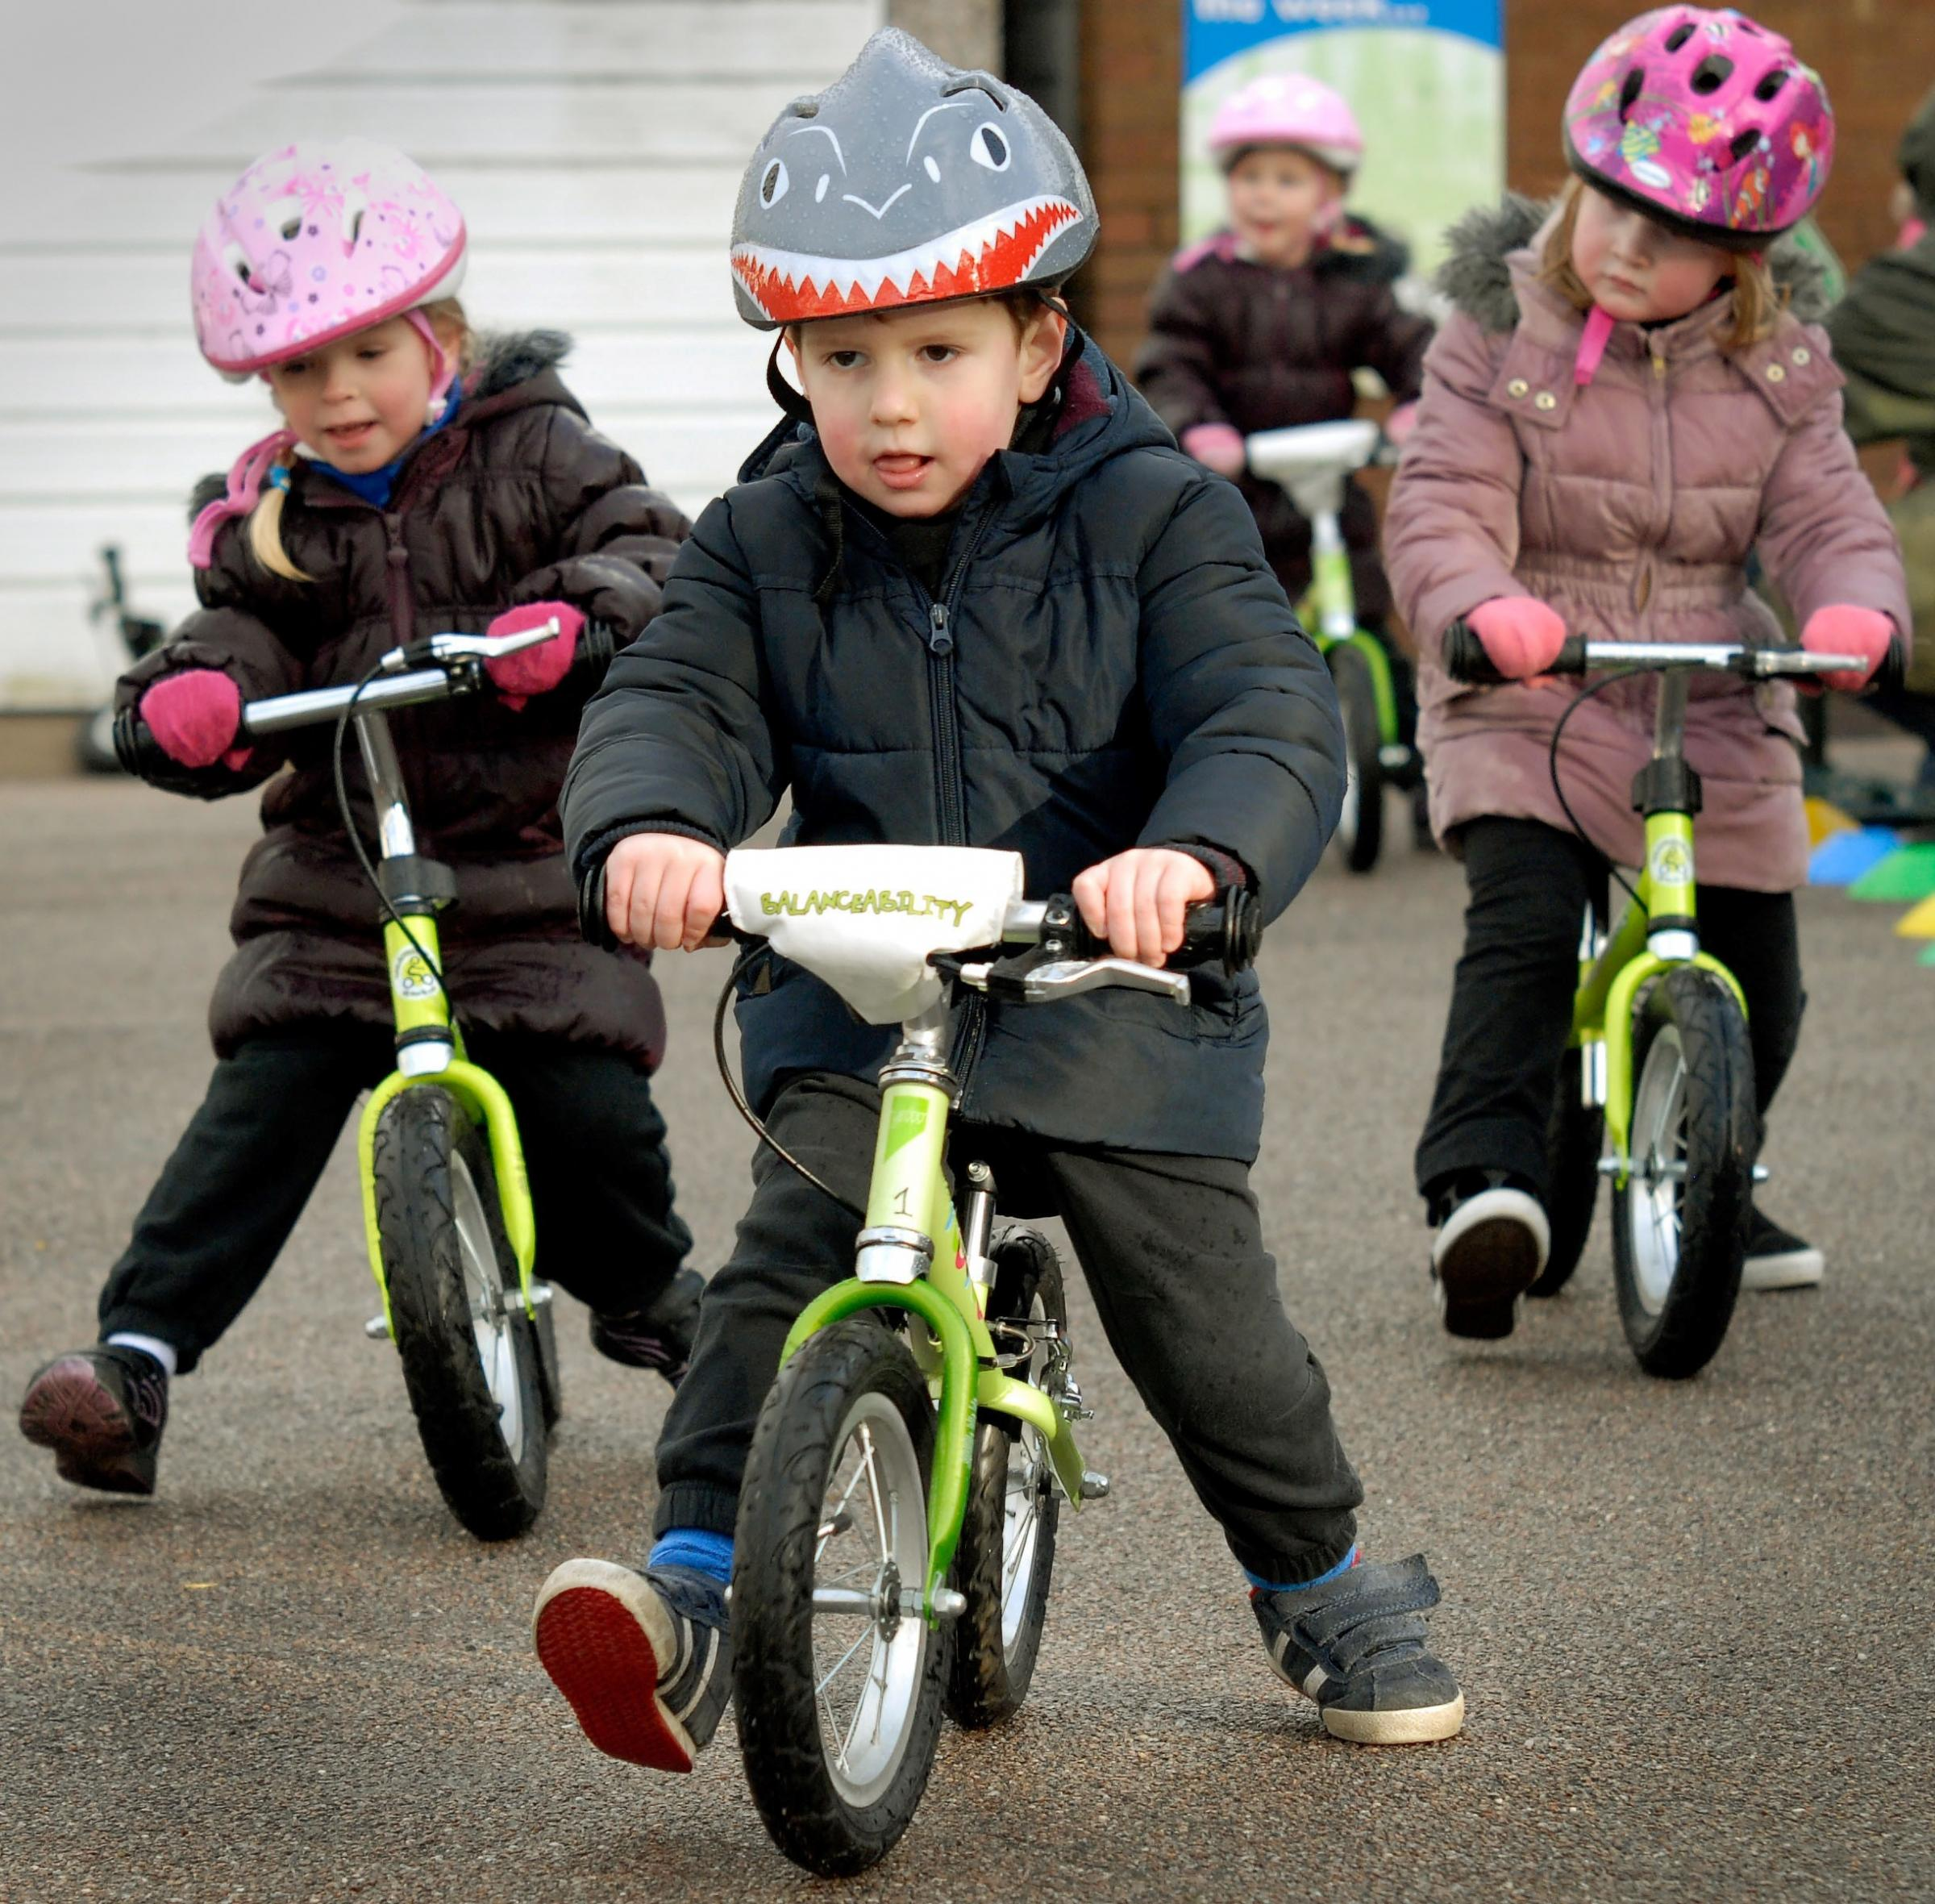 Wheely good fun! Elisa Fletcher, Charlie Green and Maisie Tapping on the new balance bikes. (buyphoto 4325819)